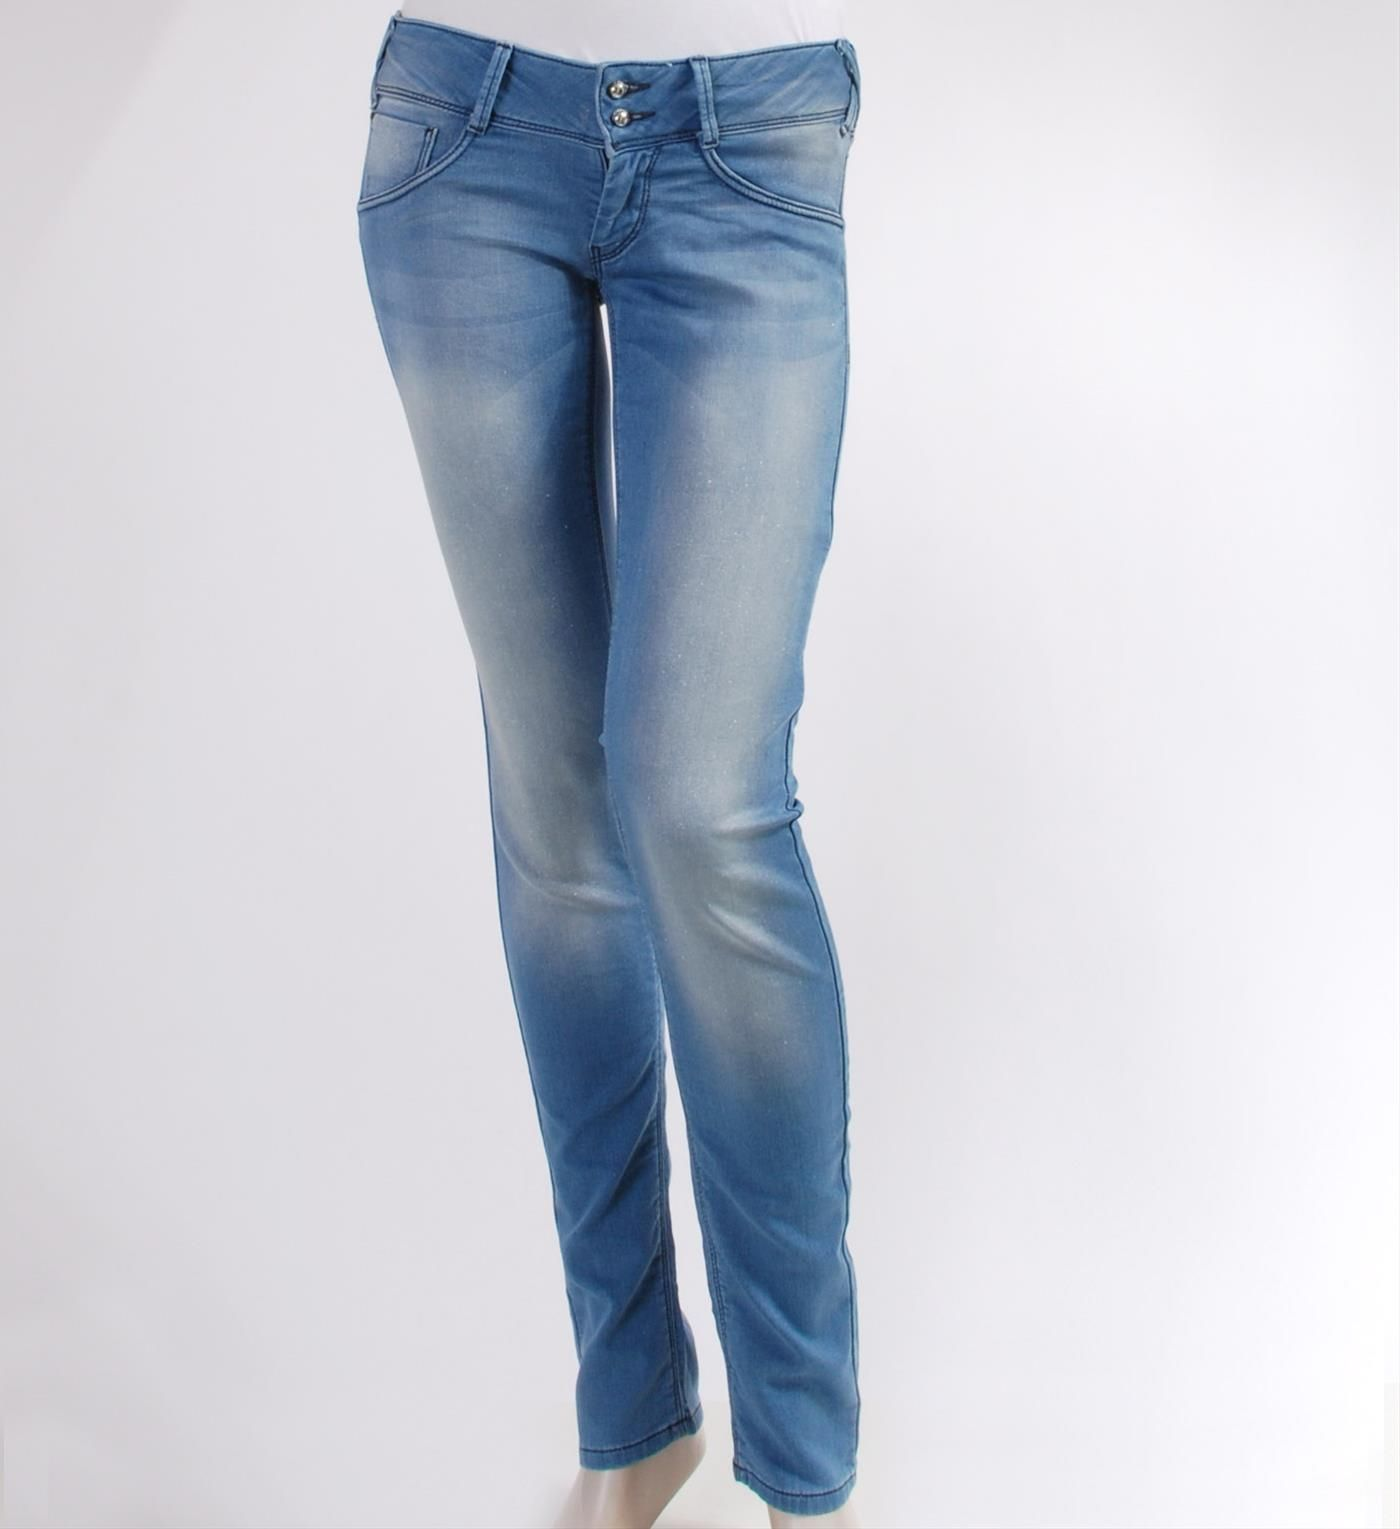 Met in jeans angel skinny